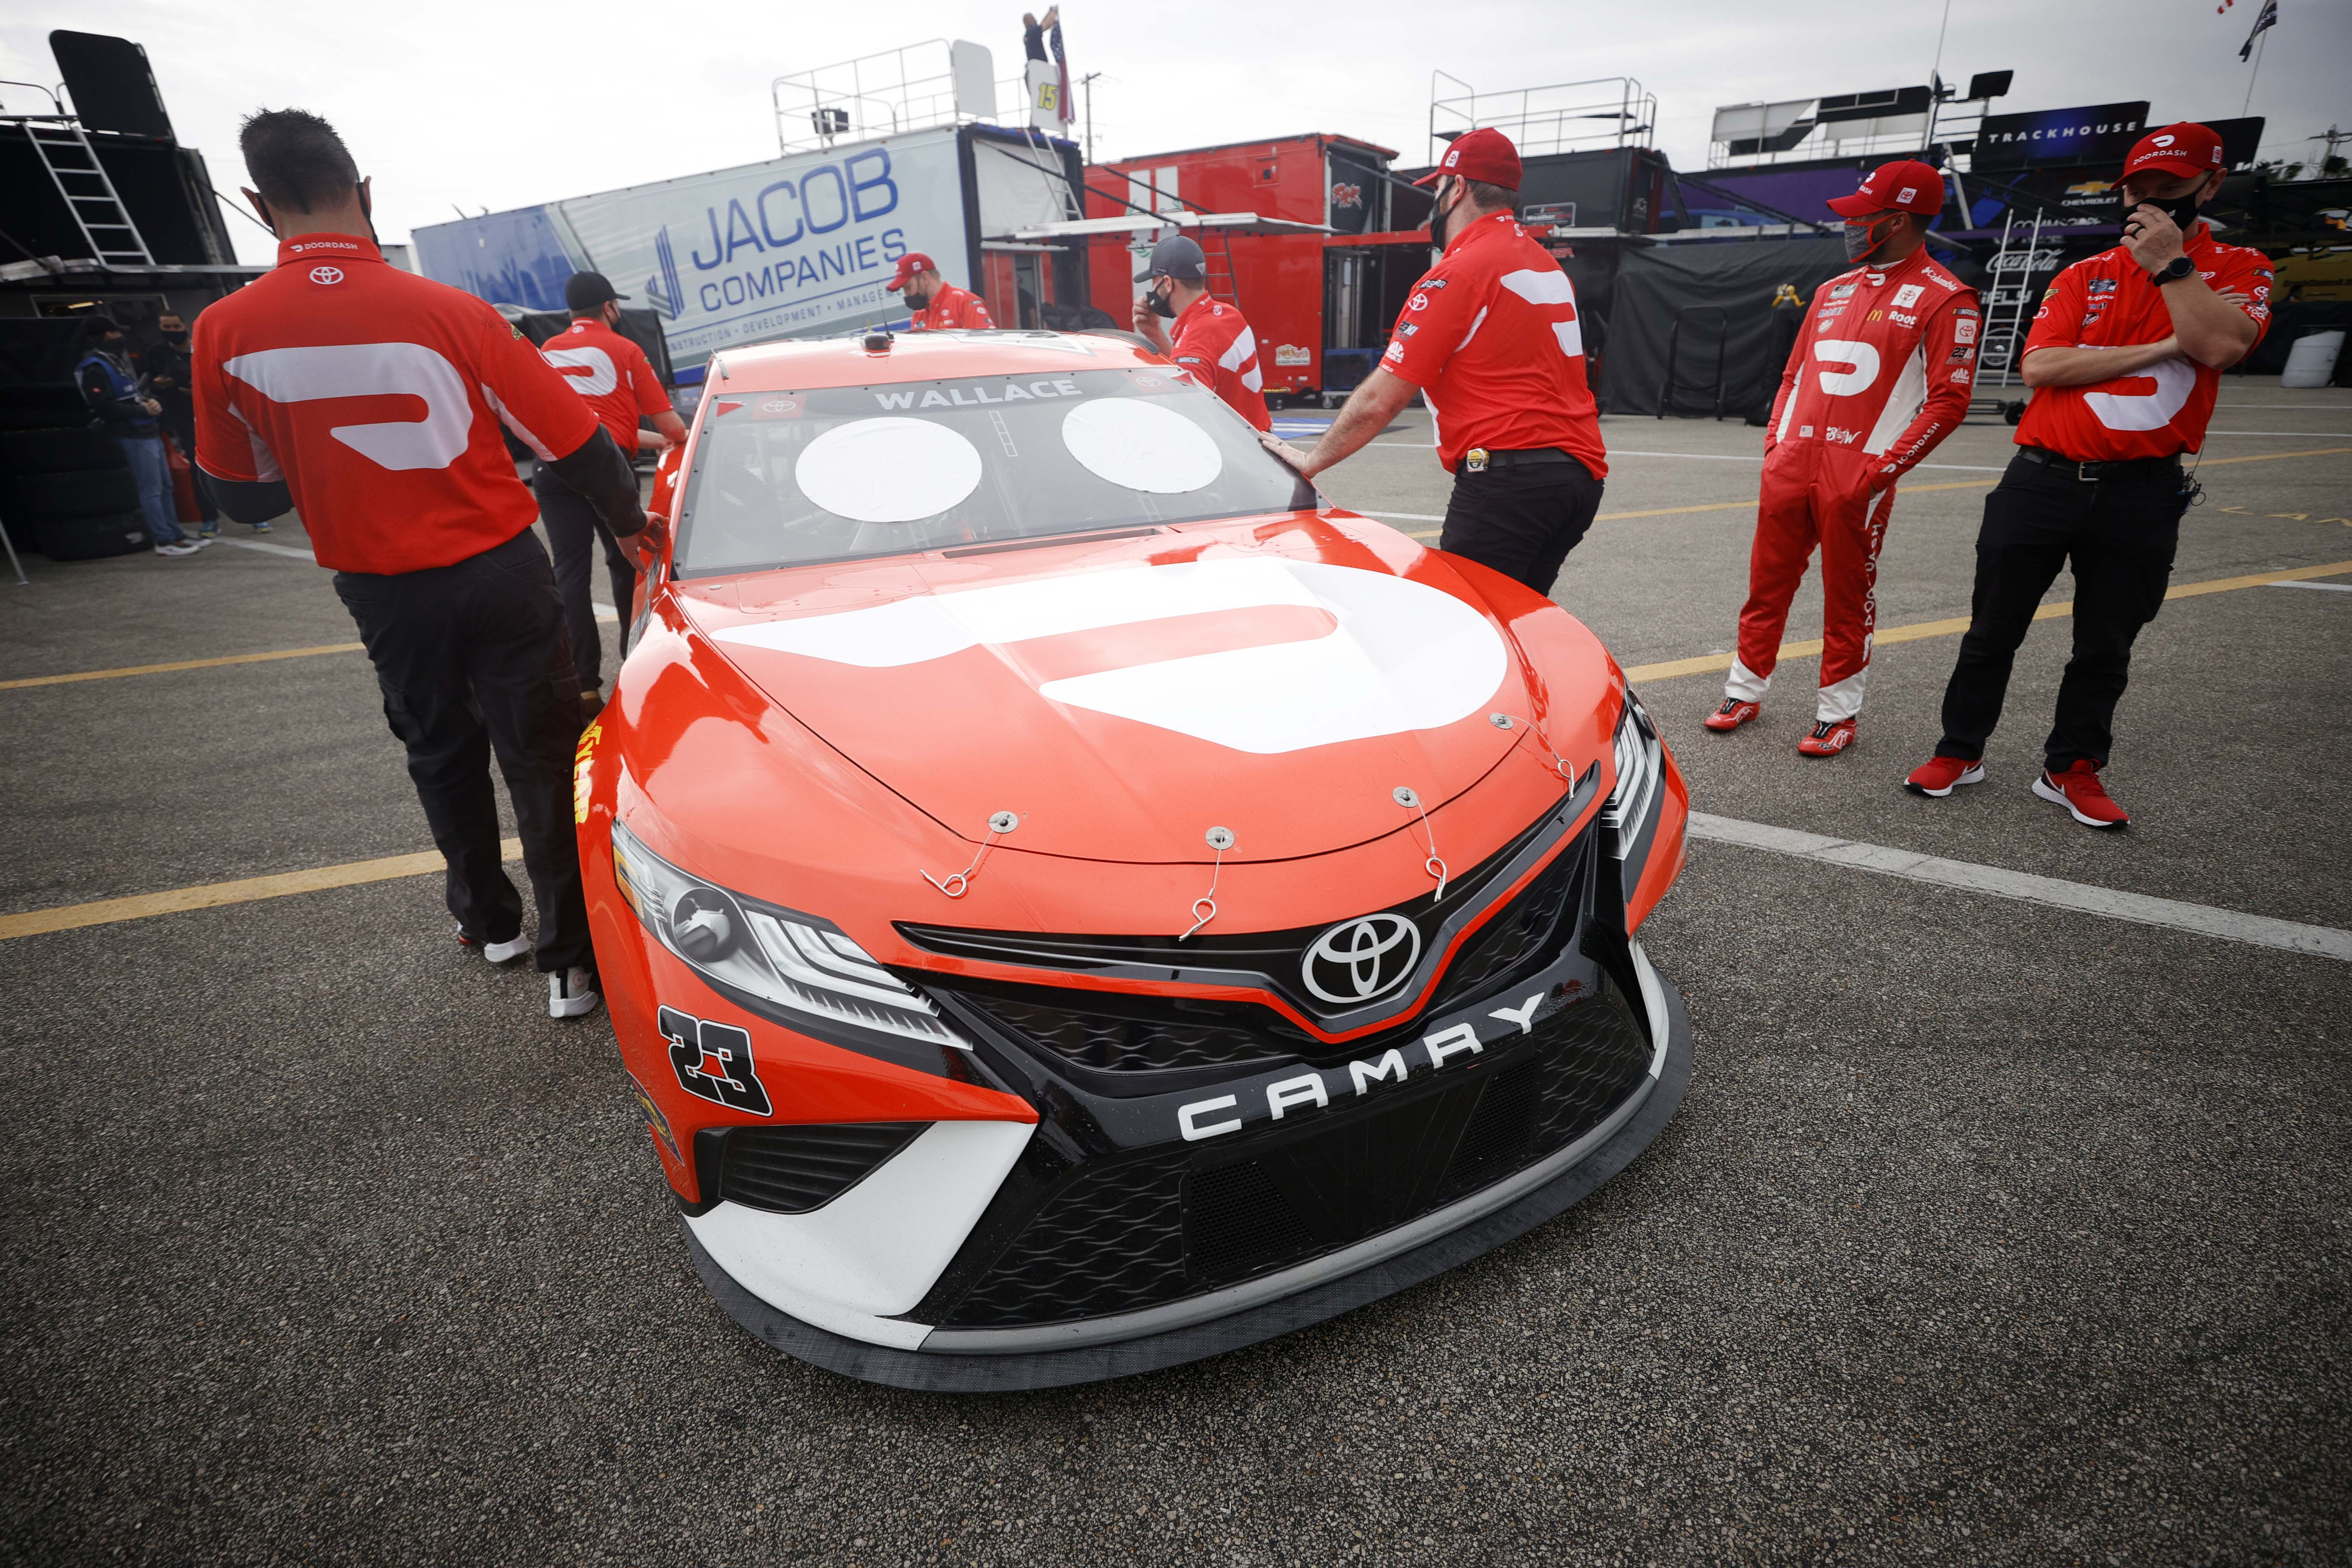 Bubba Wallace in the garage area at Daytona International Speedway - NASCAR Cup Series